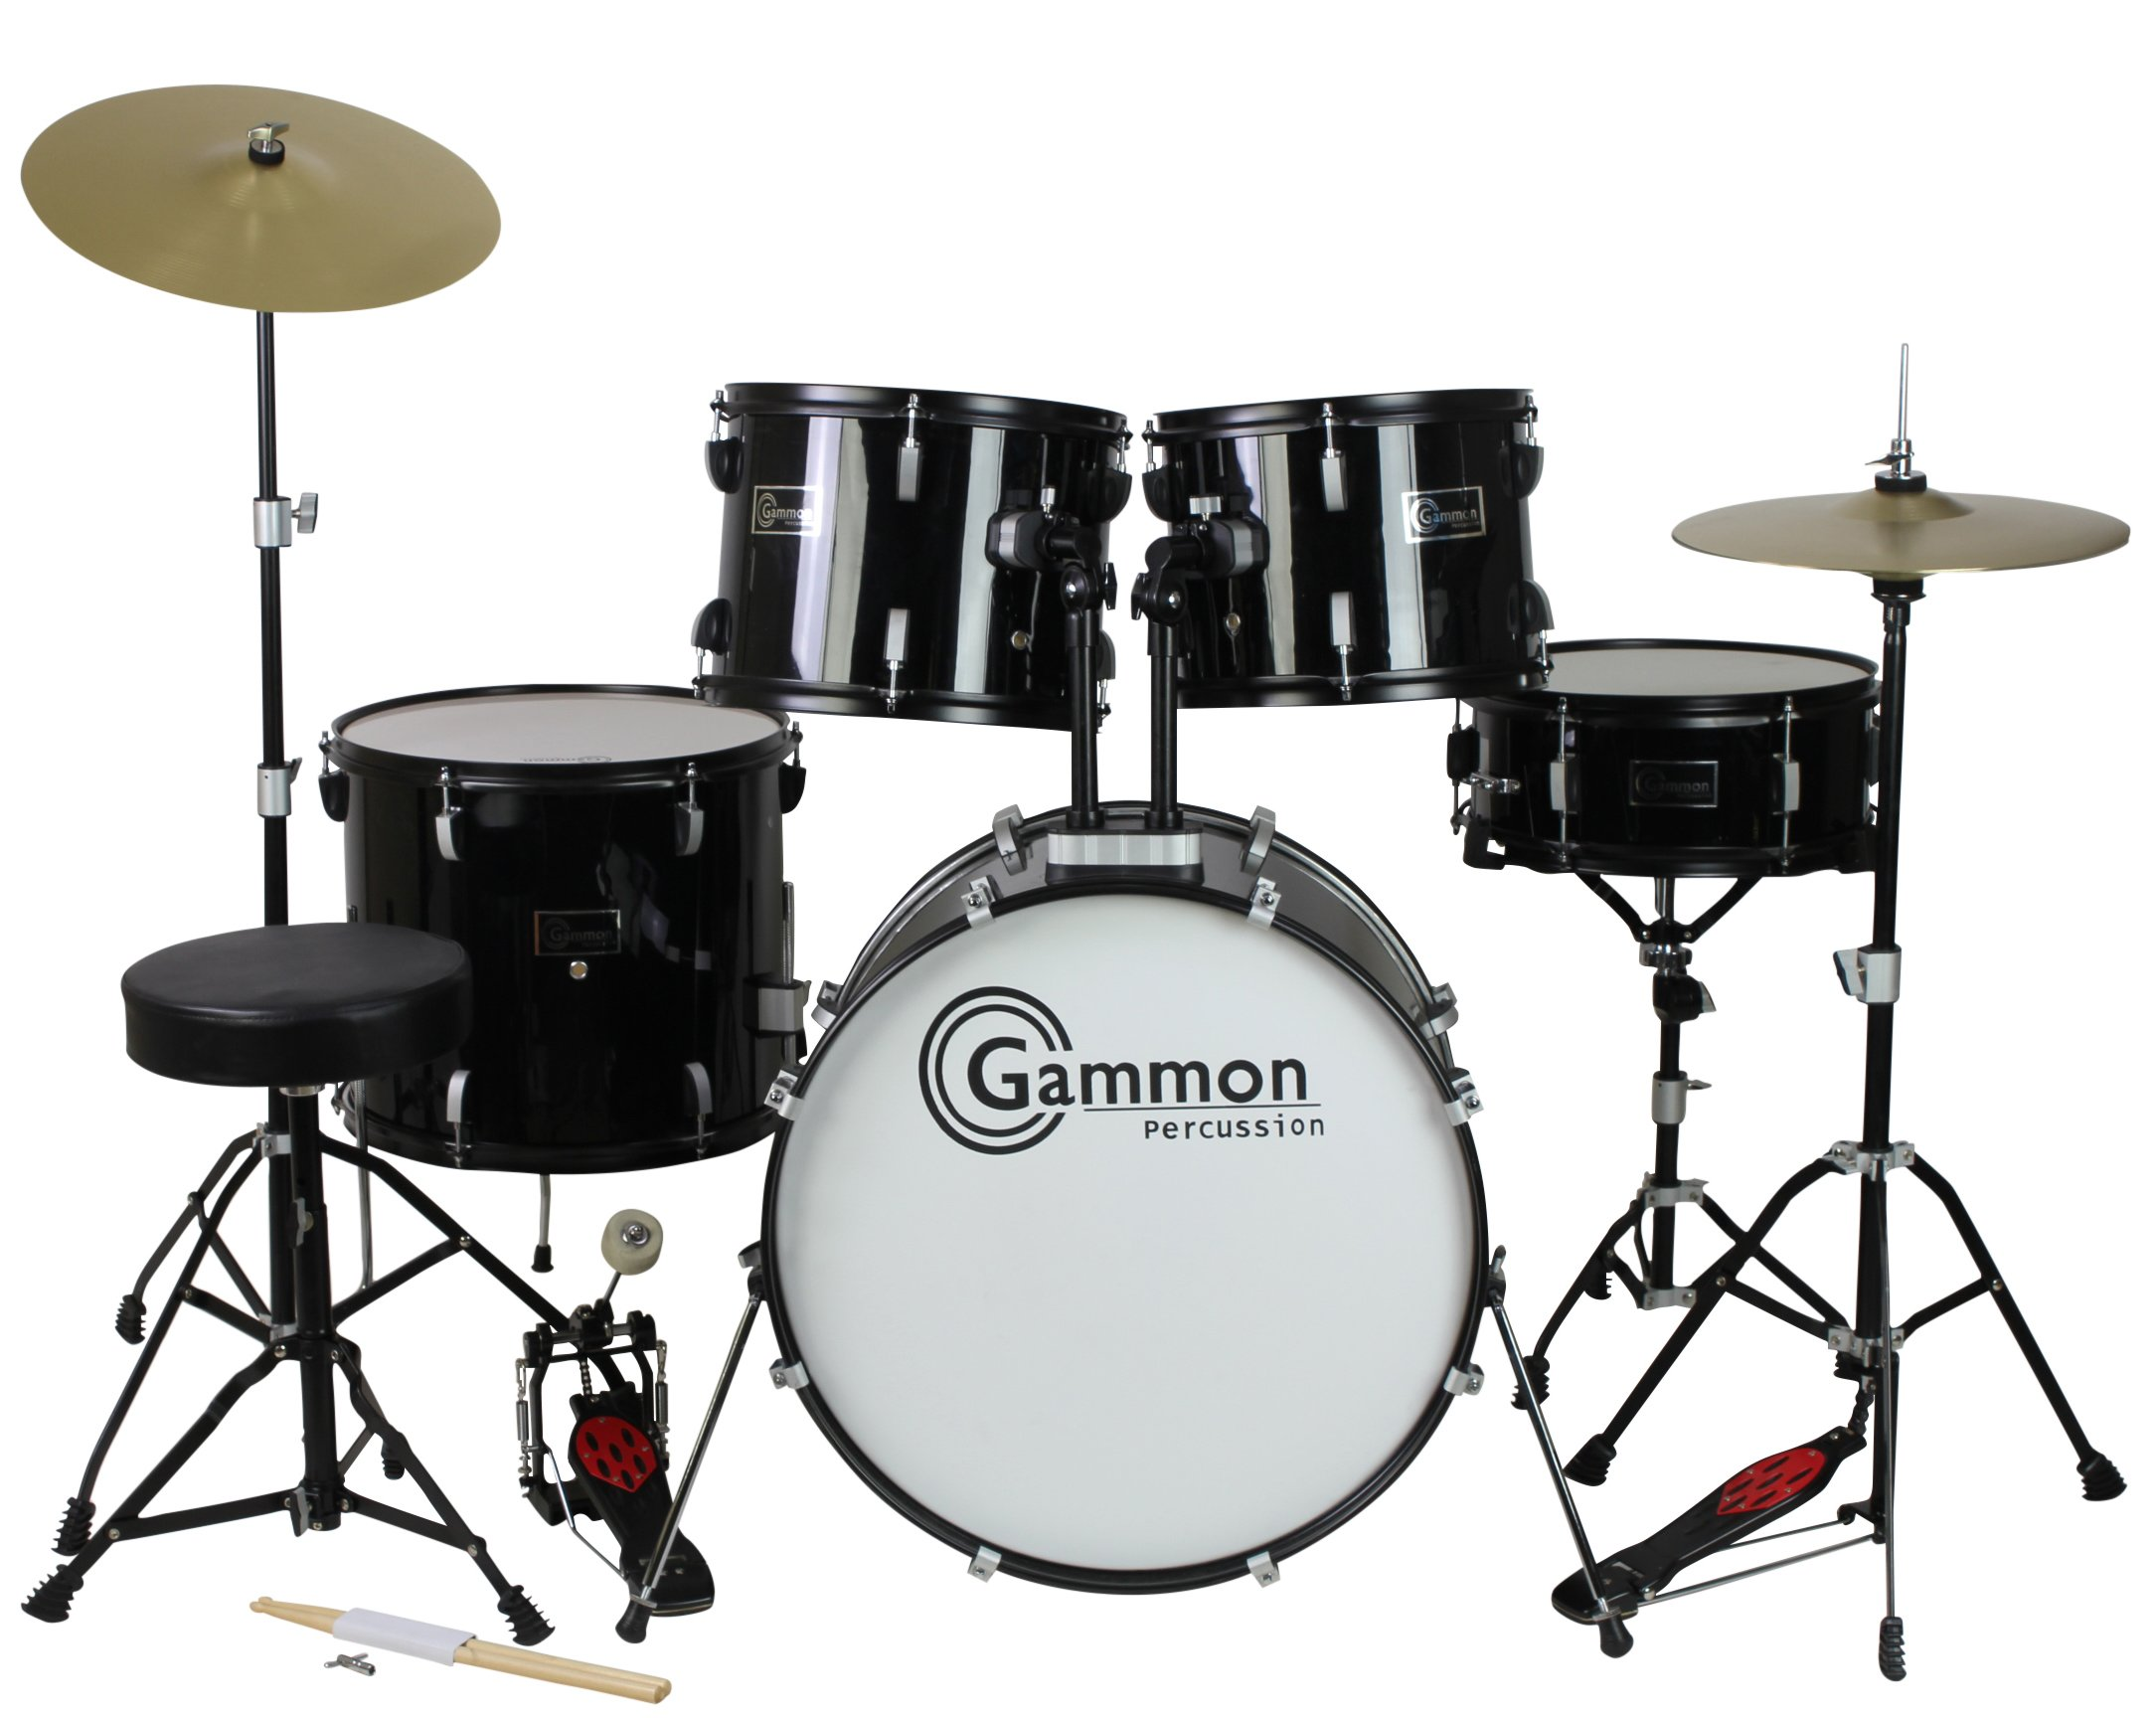 Gammon Percussion Full Size Complete Adult 5 Piece Drum Set with Cymbals Stands Stool and Sticks, Black by Gammon Percussion (Image #3)